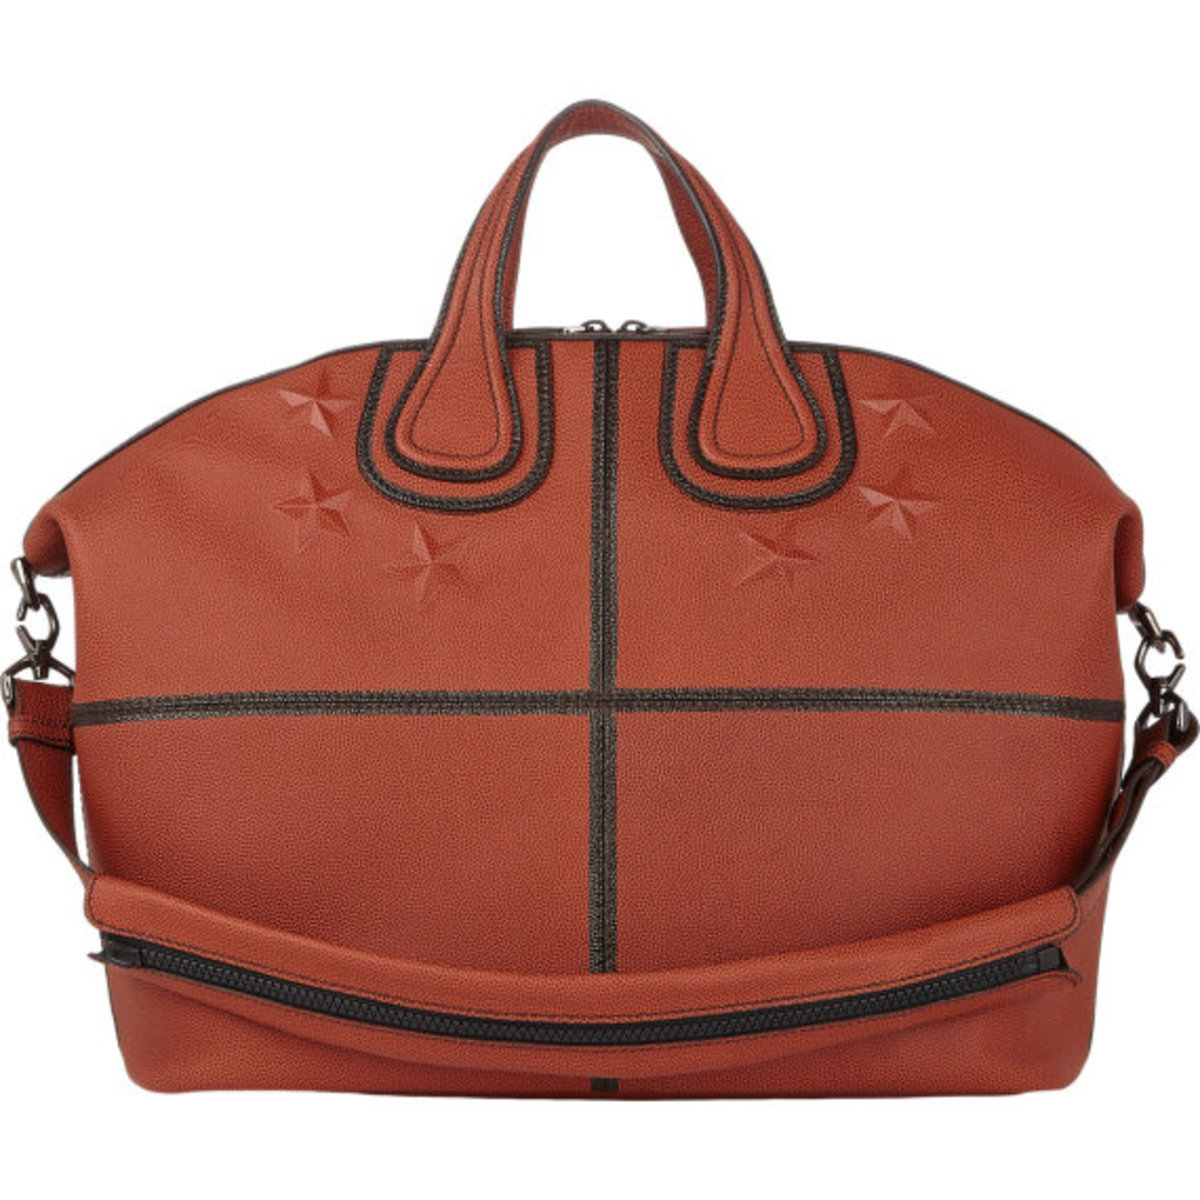 GIVENCHY - Star-Studded Nightingale Tote in Basketball Leather - 1